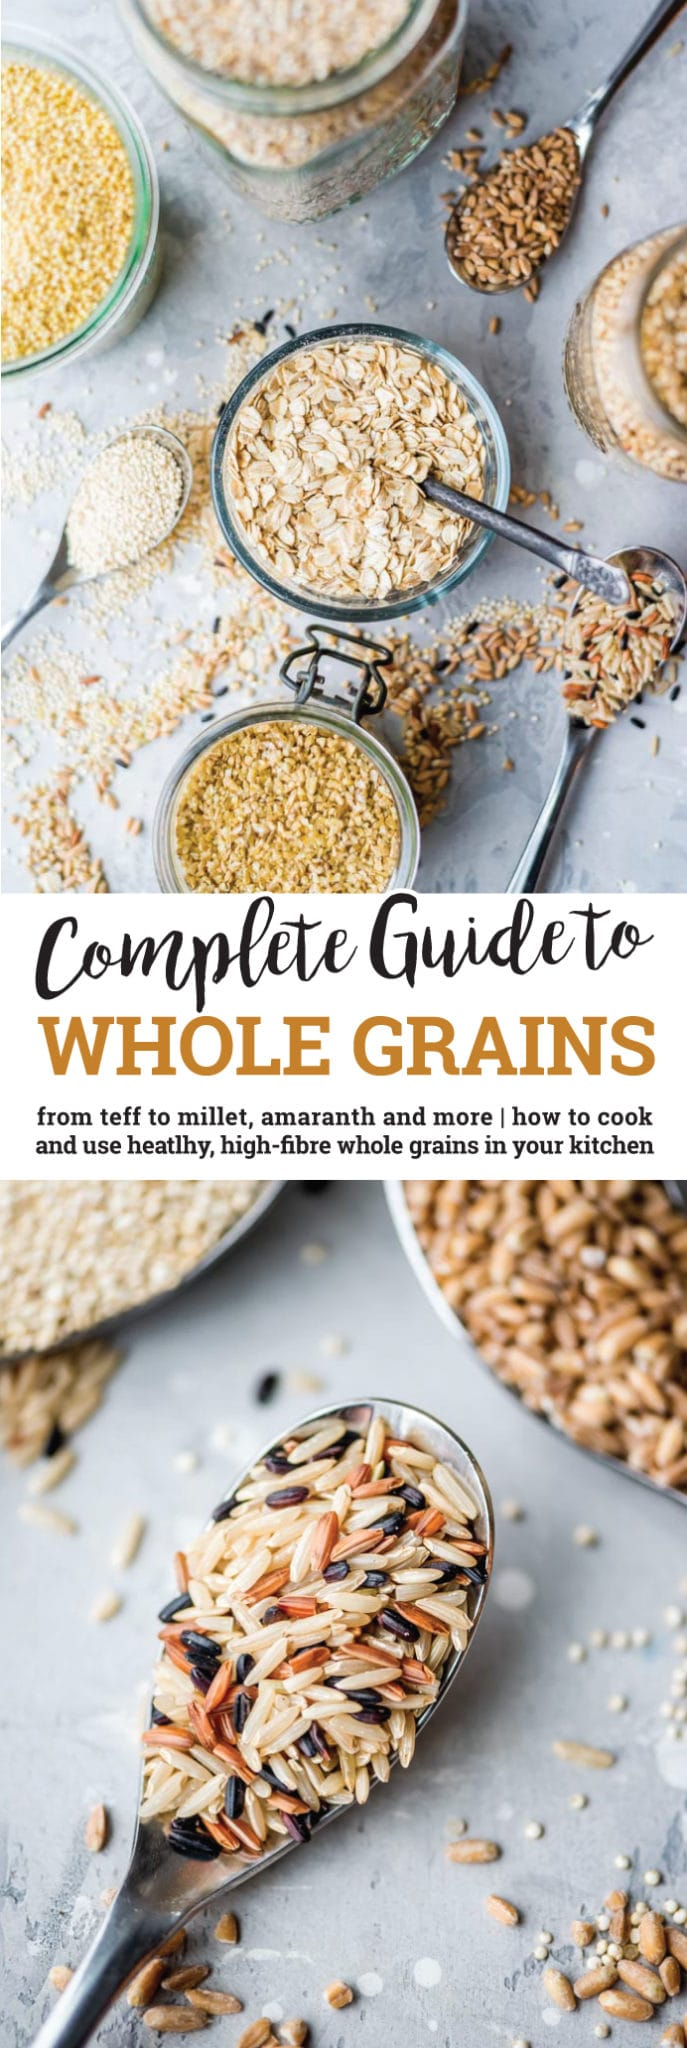 Everything you need to know about cooking and eating healthy, high-fibre, whole grains. High in vitamins, minerals and antioxidants and low in fat, whole grains are a wonderfully nutritious food to include in your diet. Plenty of gluten-free options!